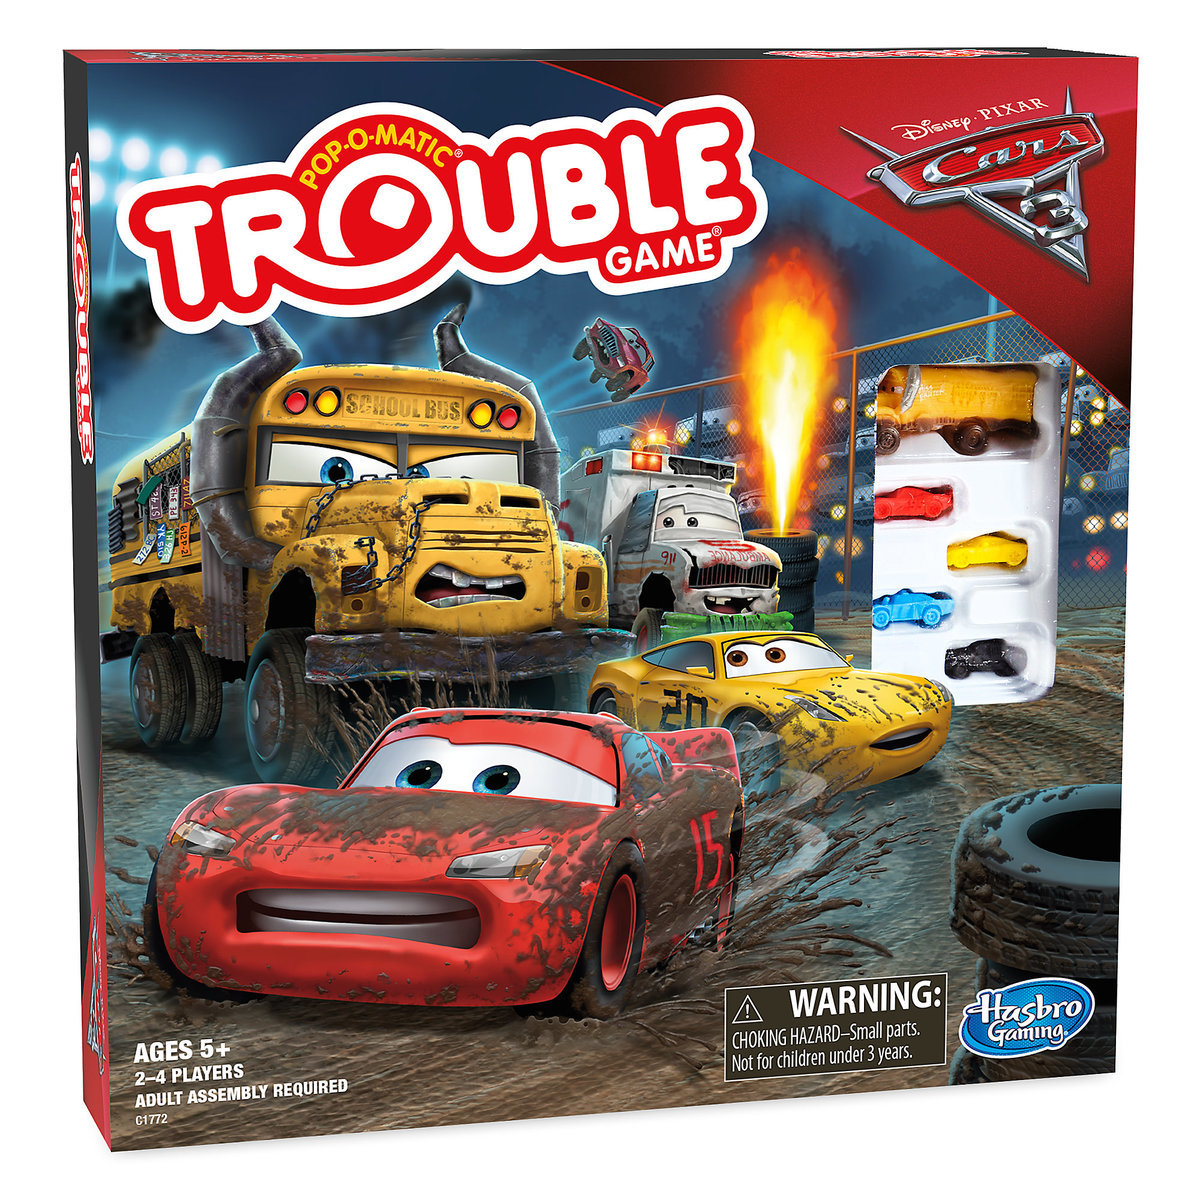 Trouble Game - PIXAR Cars 3 Edition | shopDisney